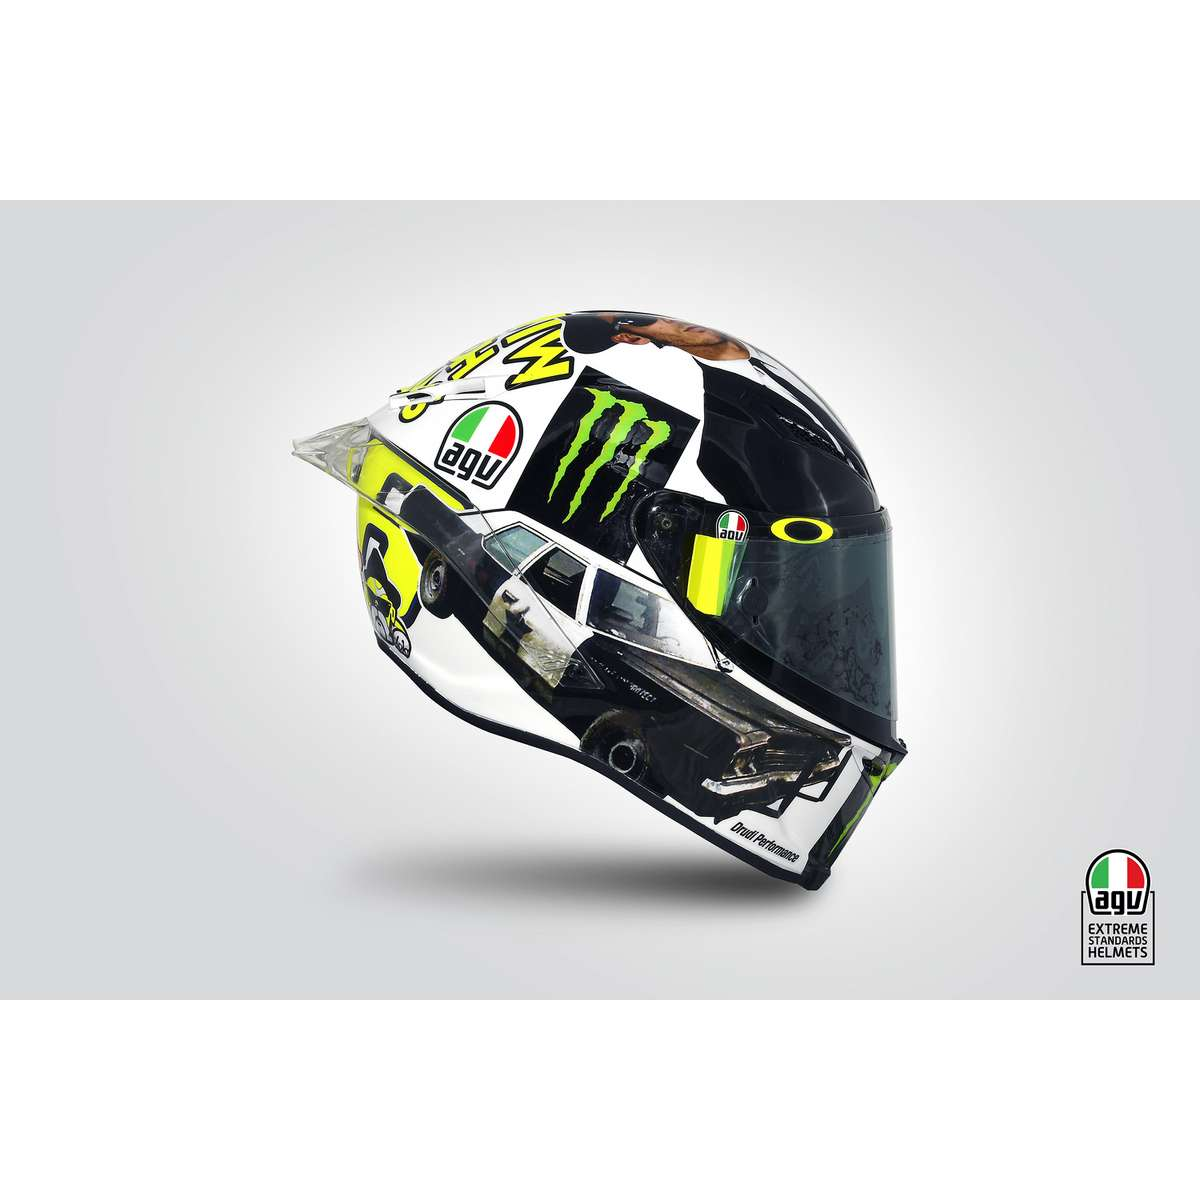 agv pista gp r top rossi misano 2016 full face helmet. Black Bedroom Furniture Sets. Home Design Ideas